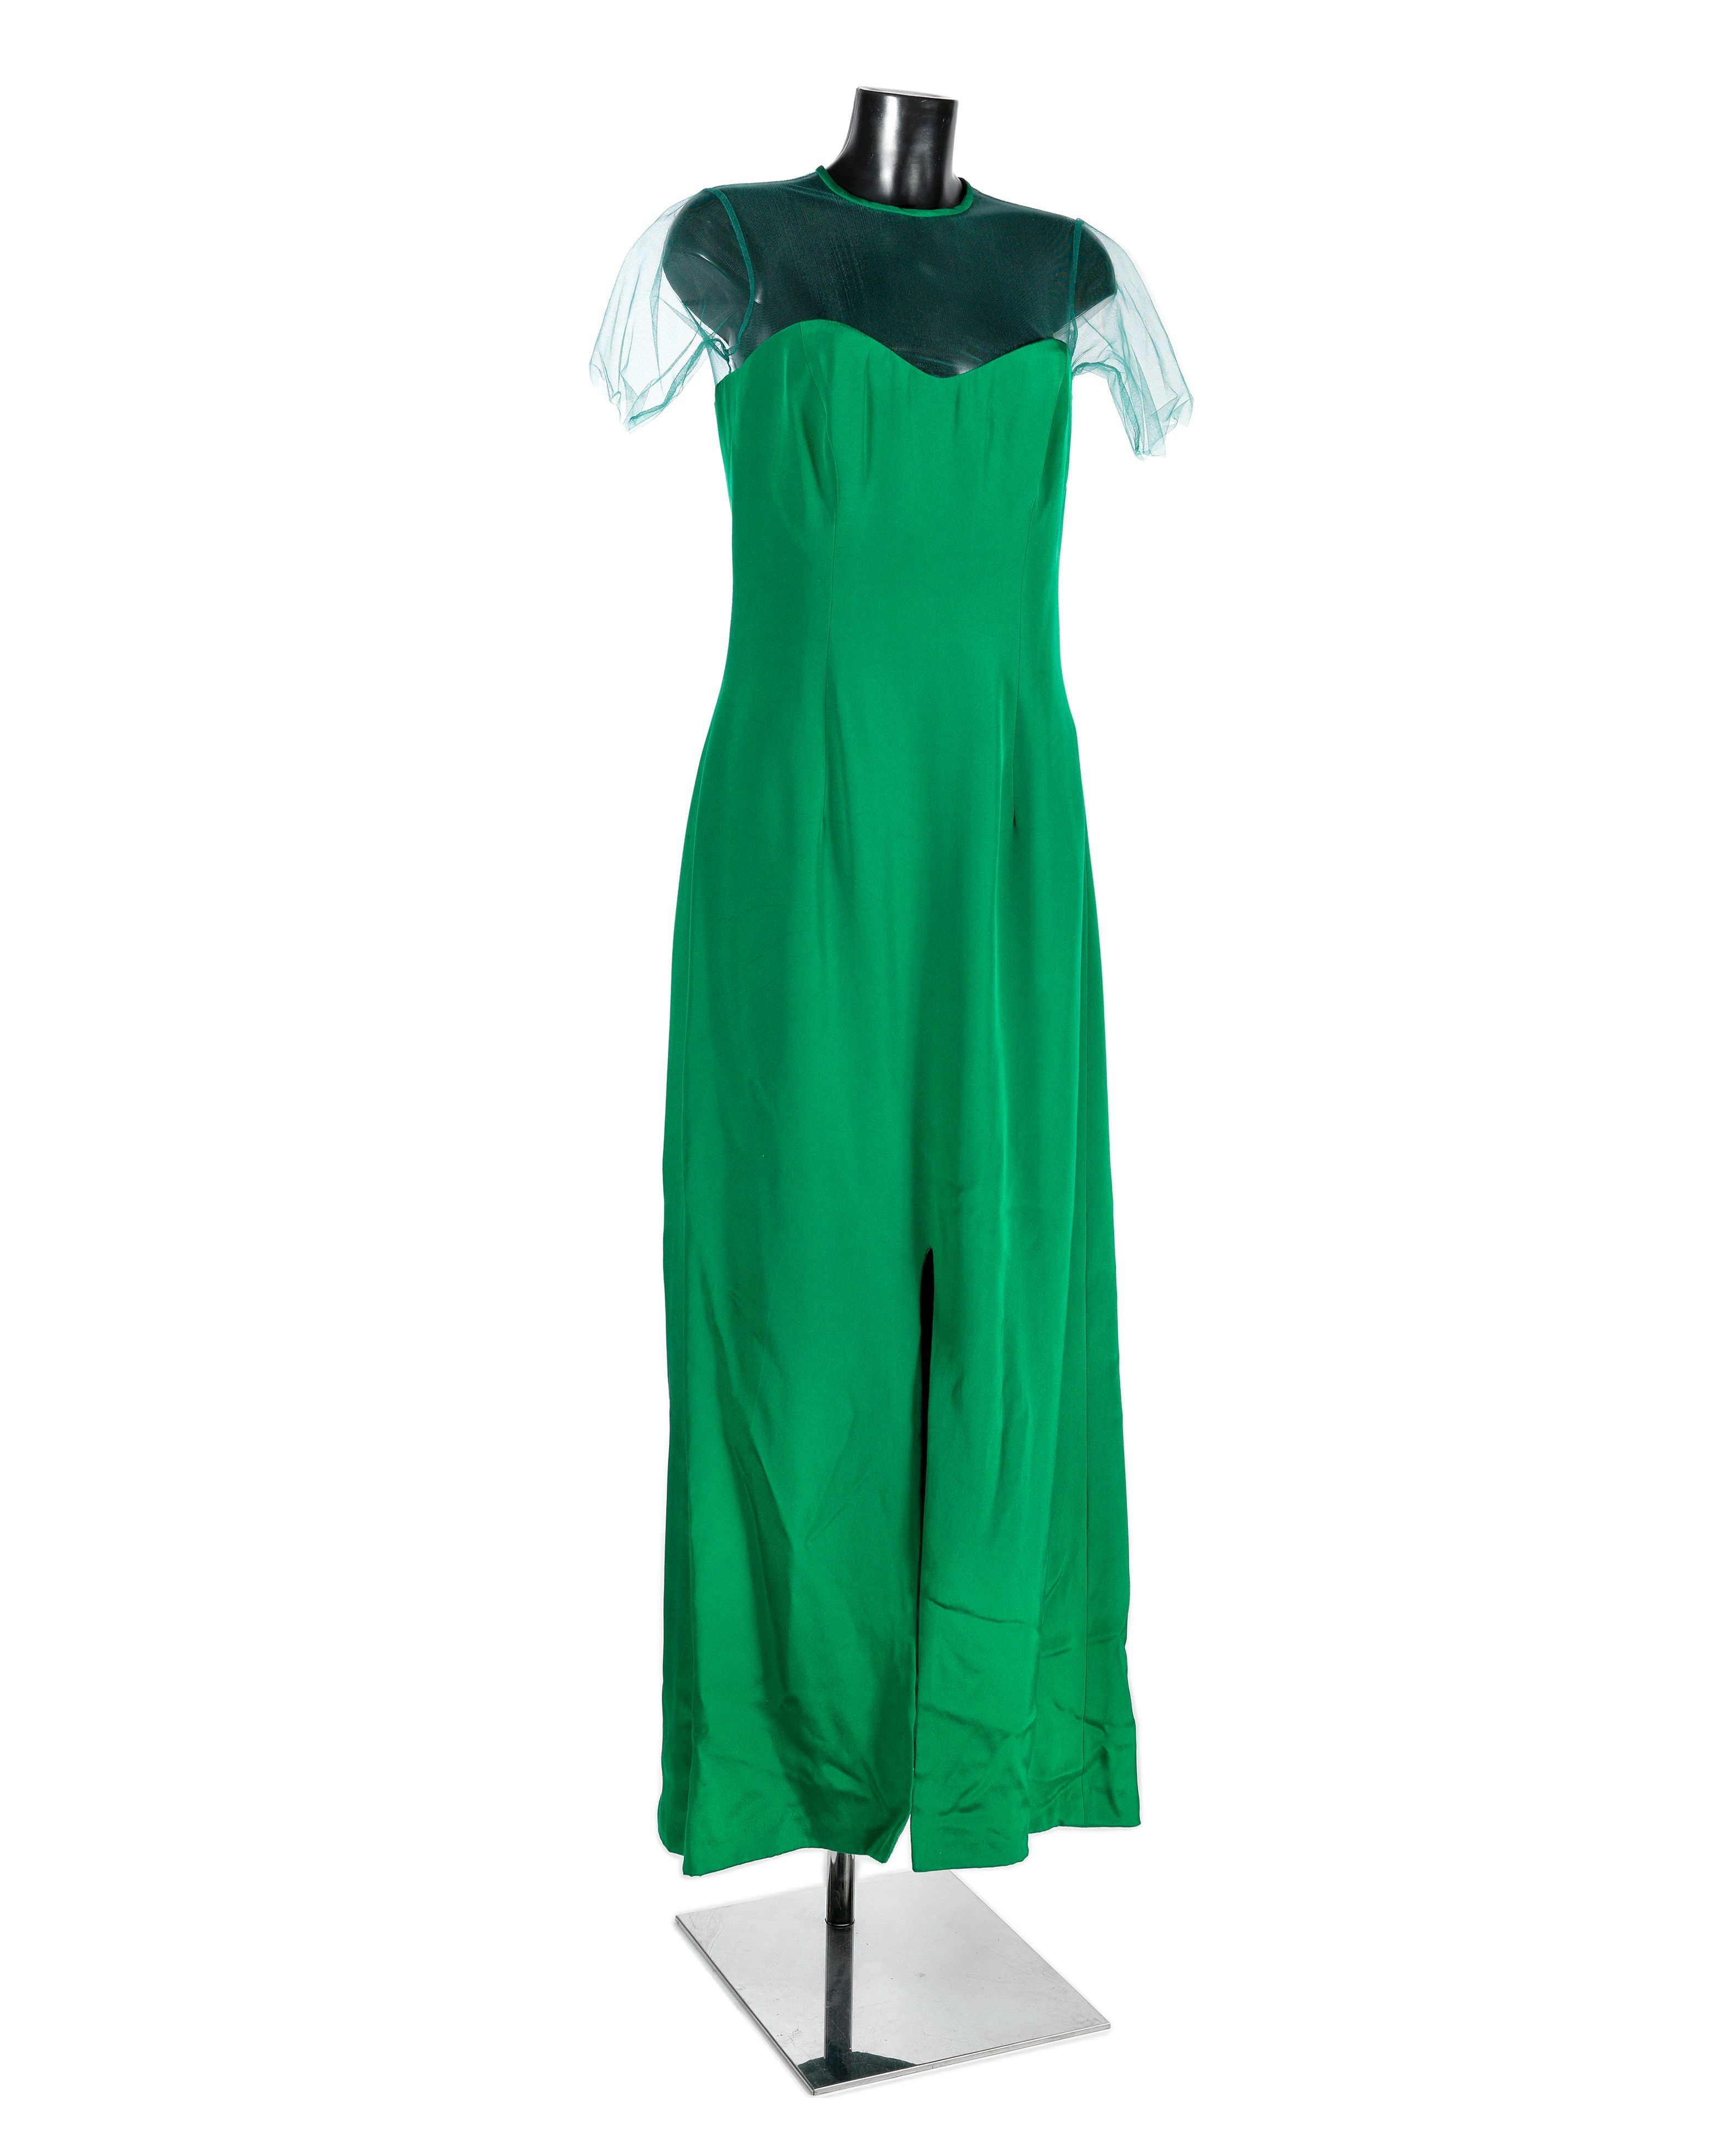 The Children Act: A screen-used green concert gown worn by Emma Thompson for her role as 'Fiona M...